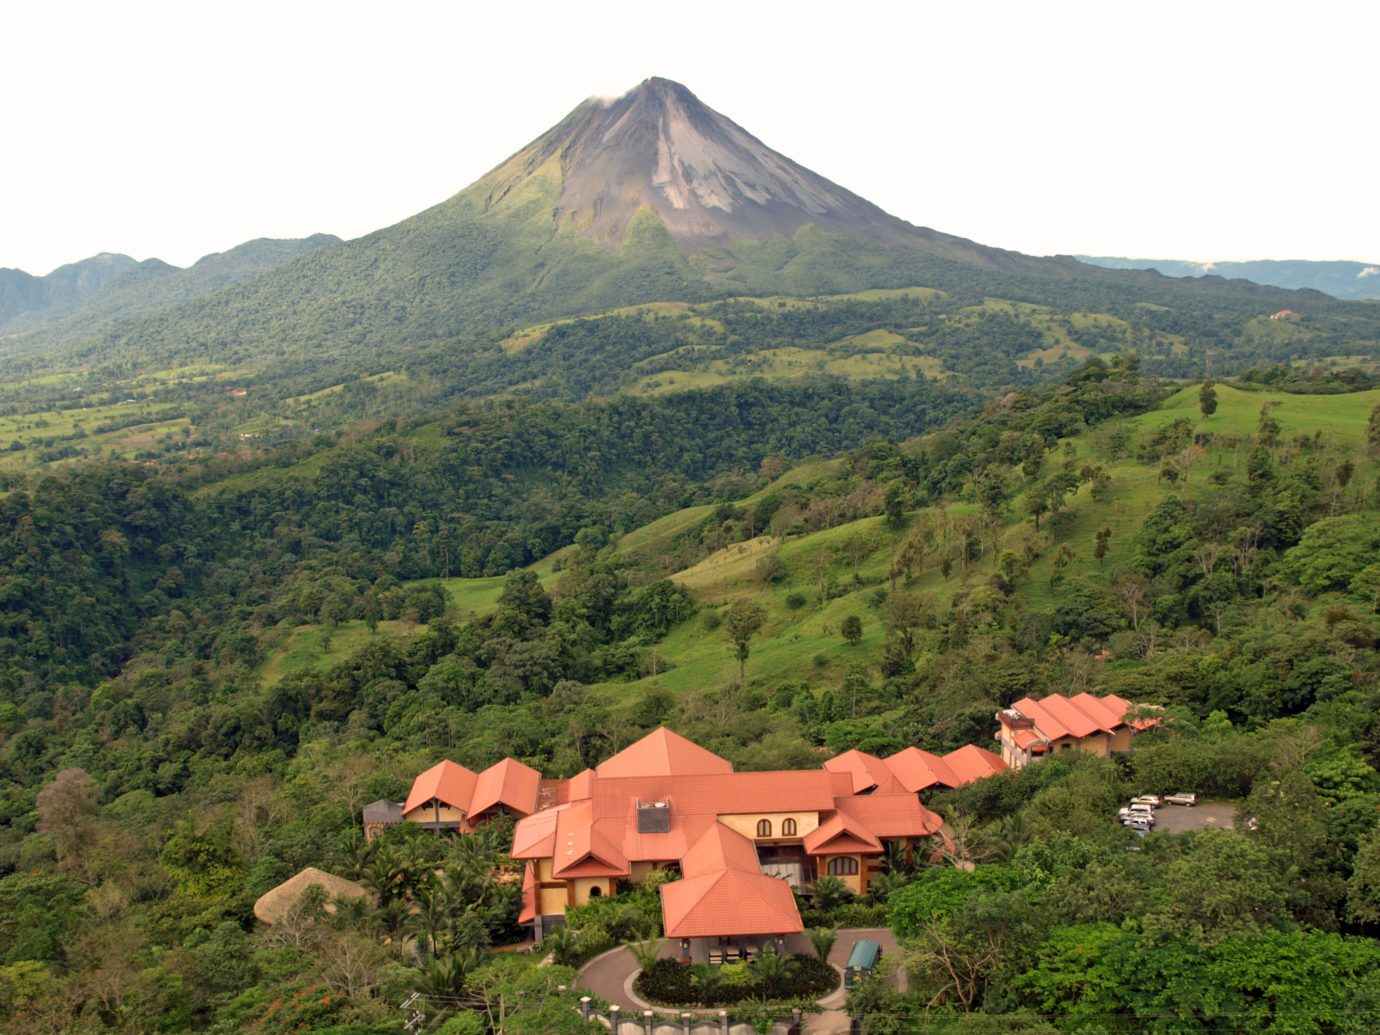 Ariel view of the Springs hotel in Costa Rica